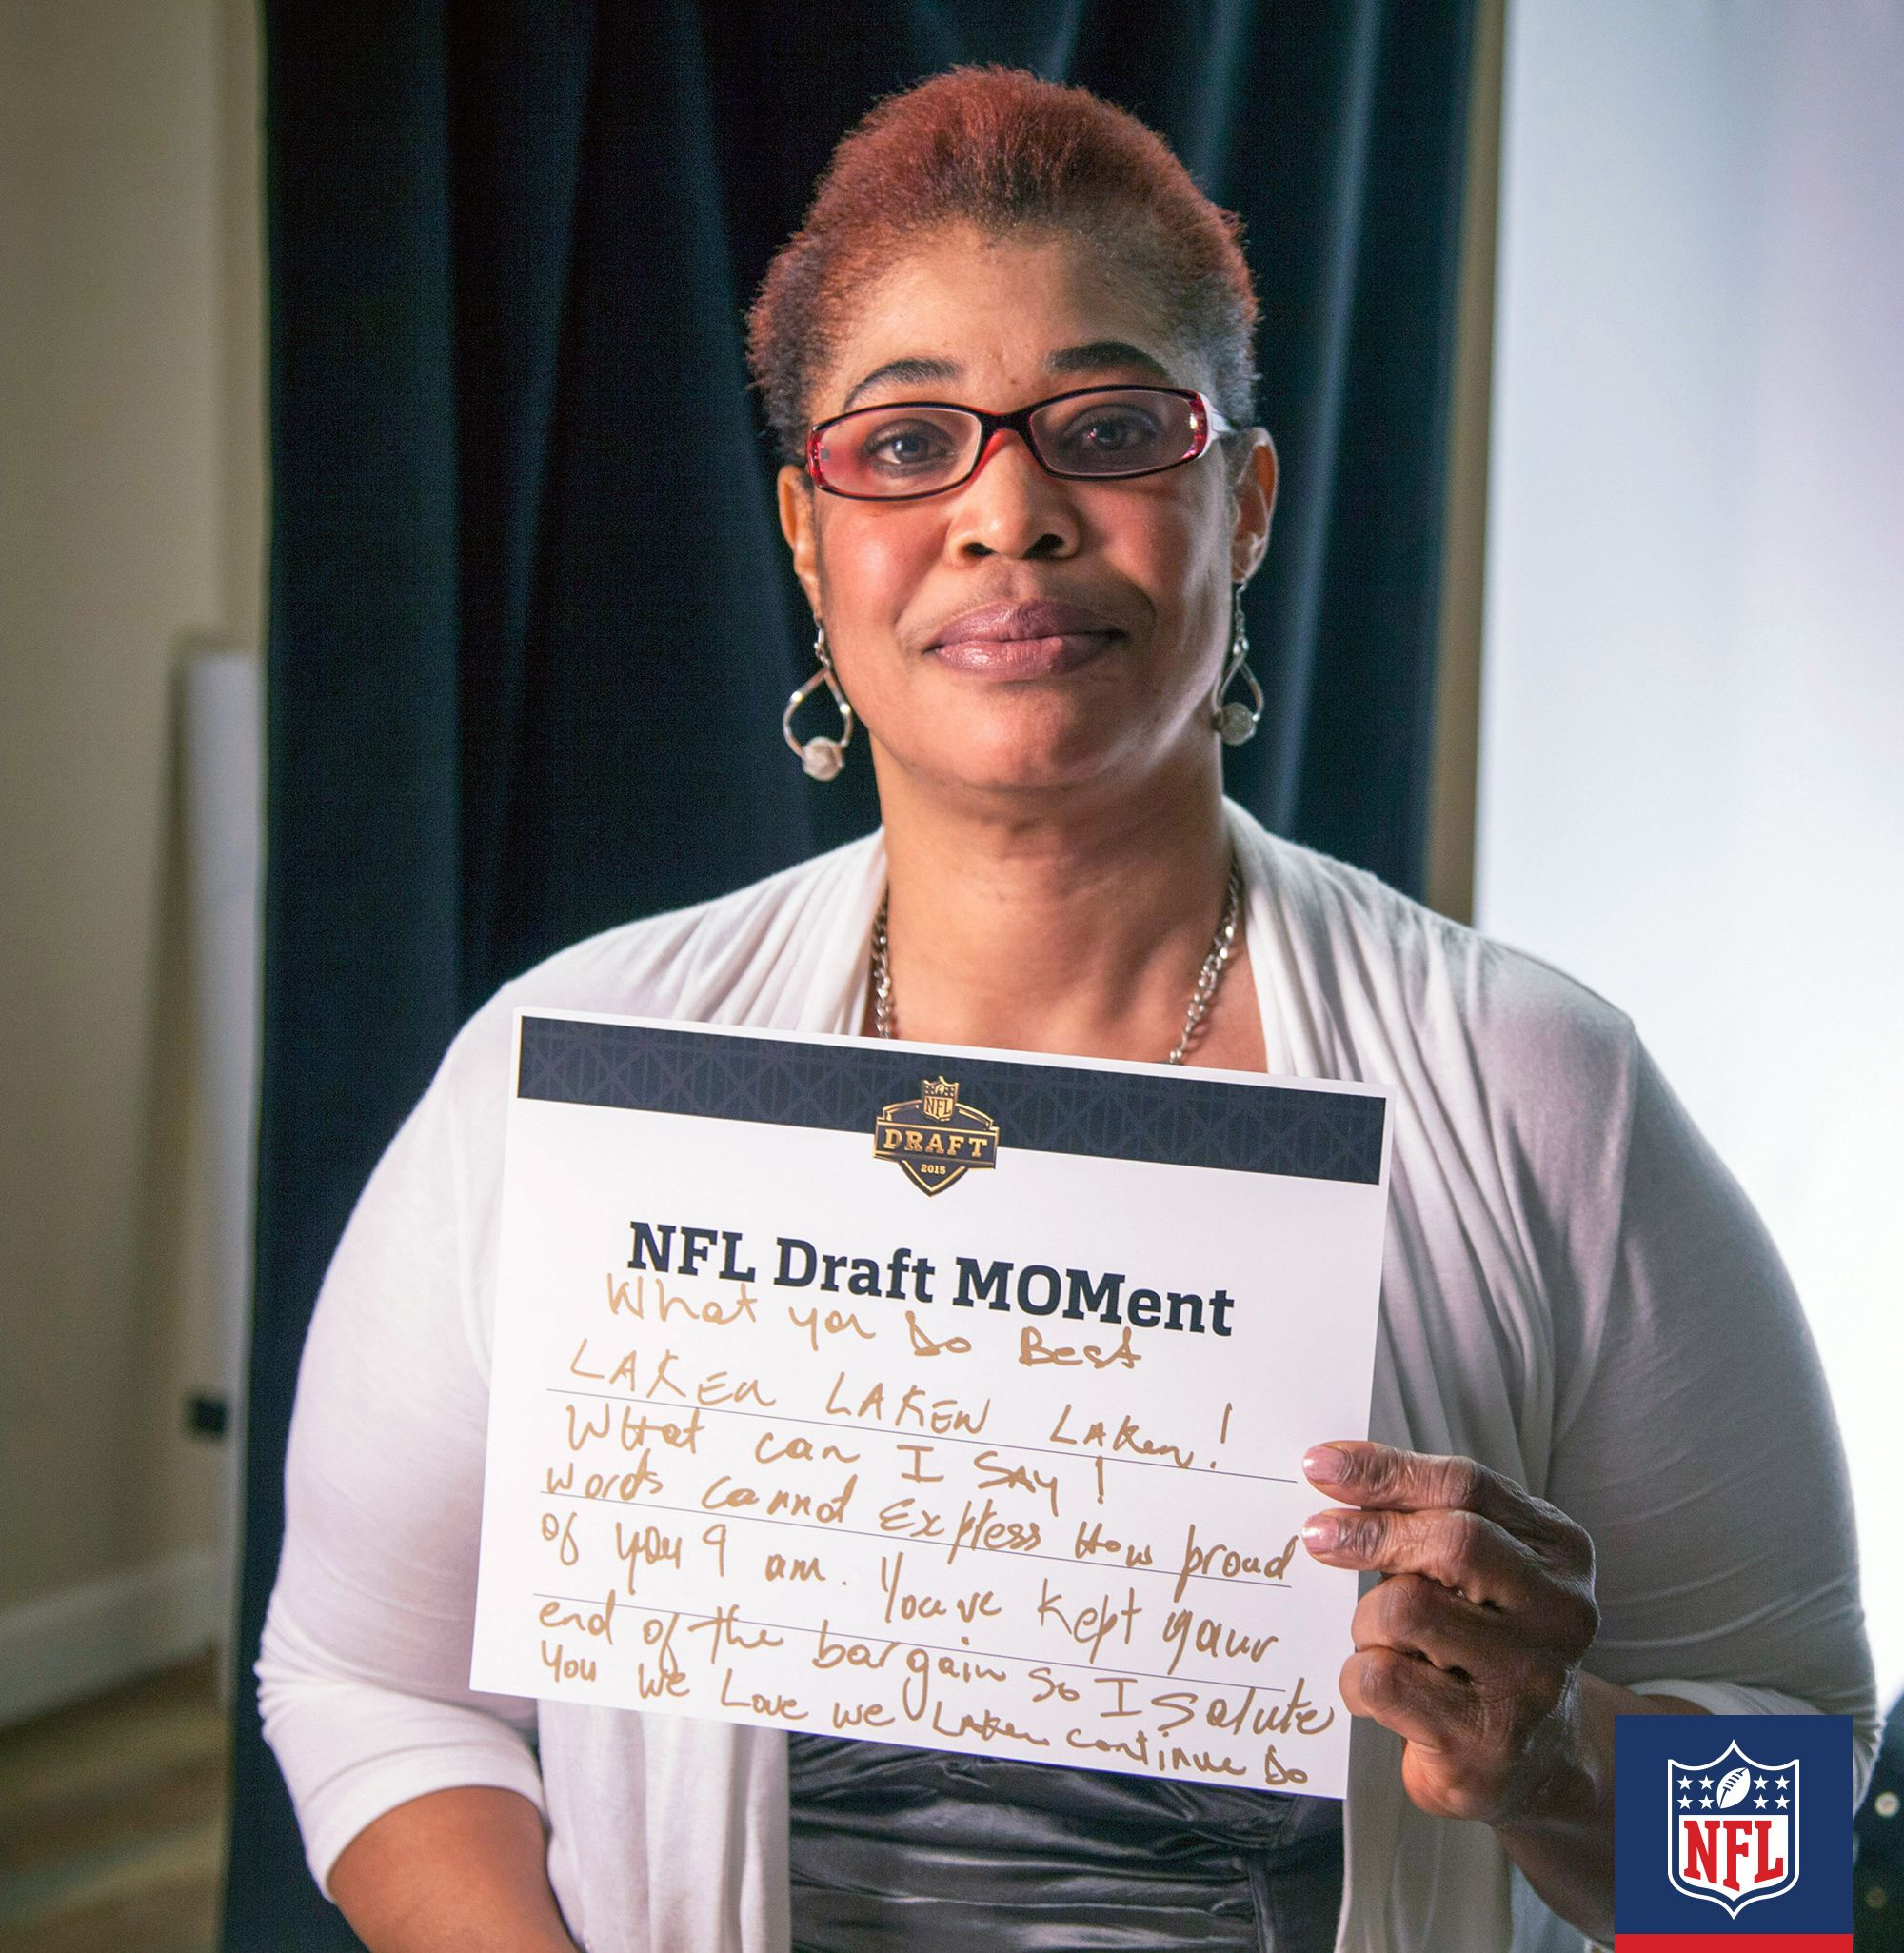 Audrey Wilson Mom Of Laken Tomlinson Who Was Drafted By The Detroit Lions Tells Her Son Just How Proud She Is Cl Nfl Players Nfl Football Players Pep Talks